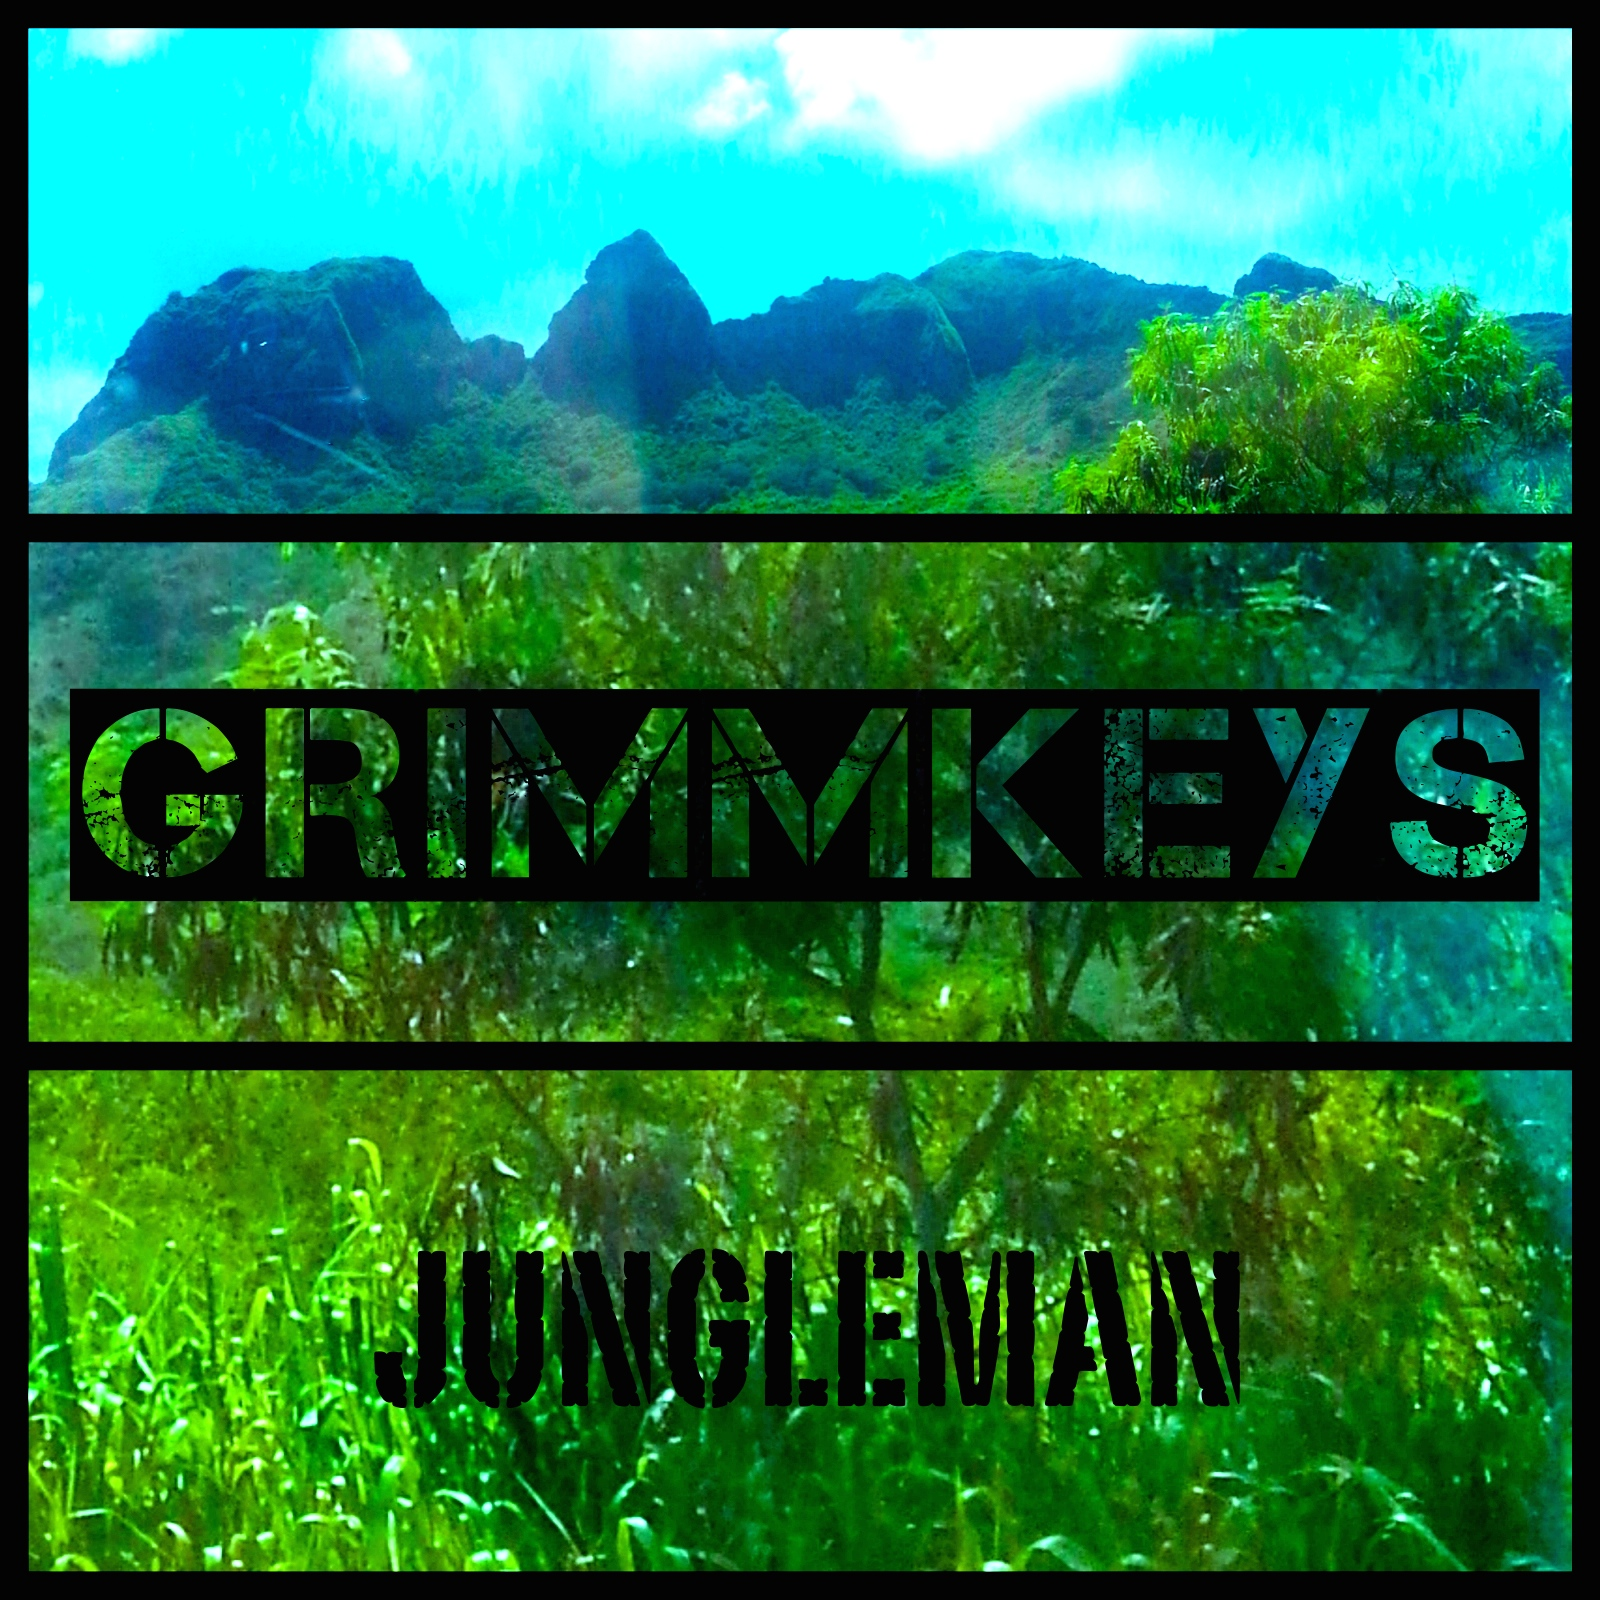 GRIMMkEYS Jungleman Cover FINAL NEW NEW 4.jpg